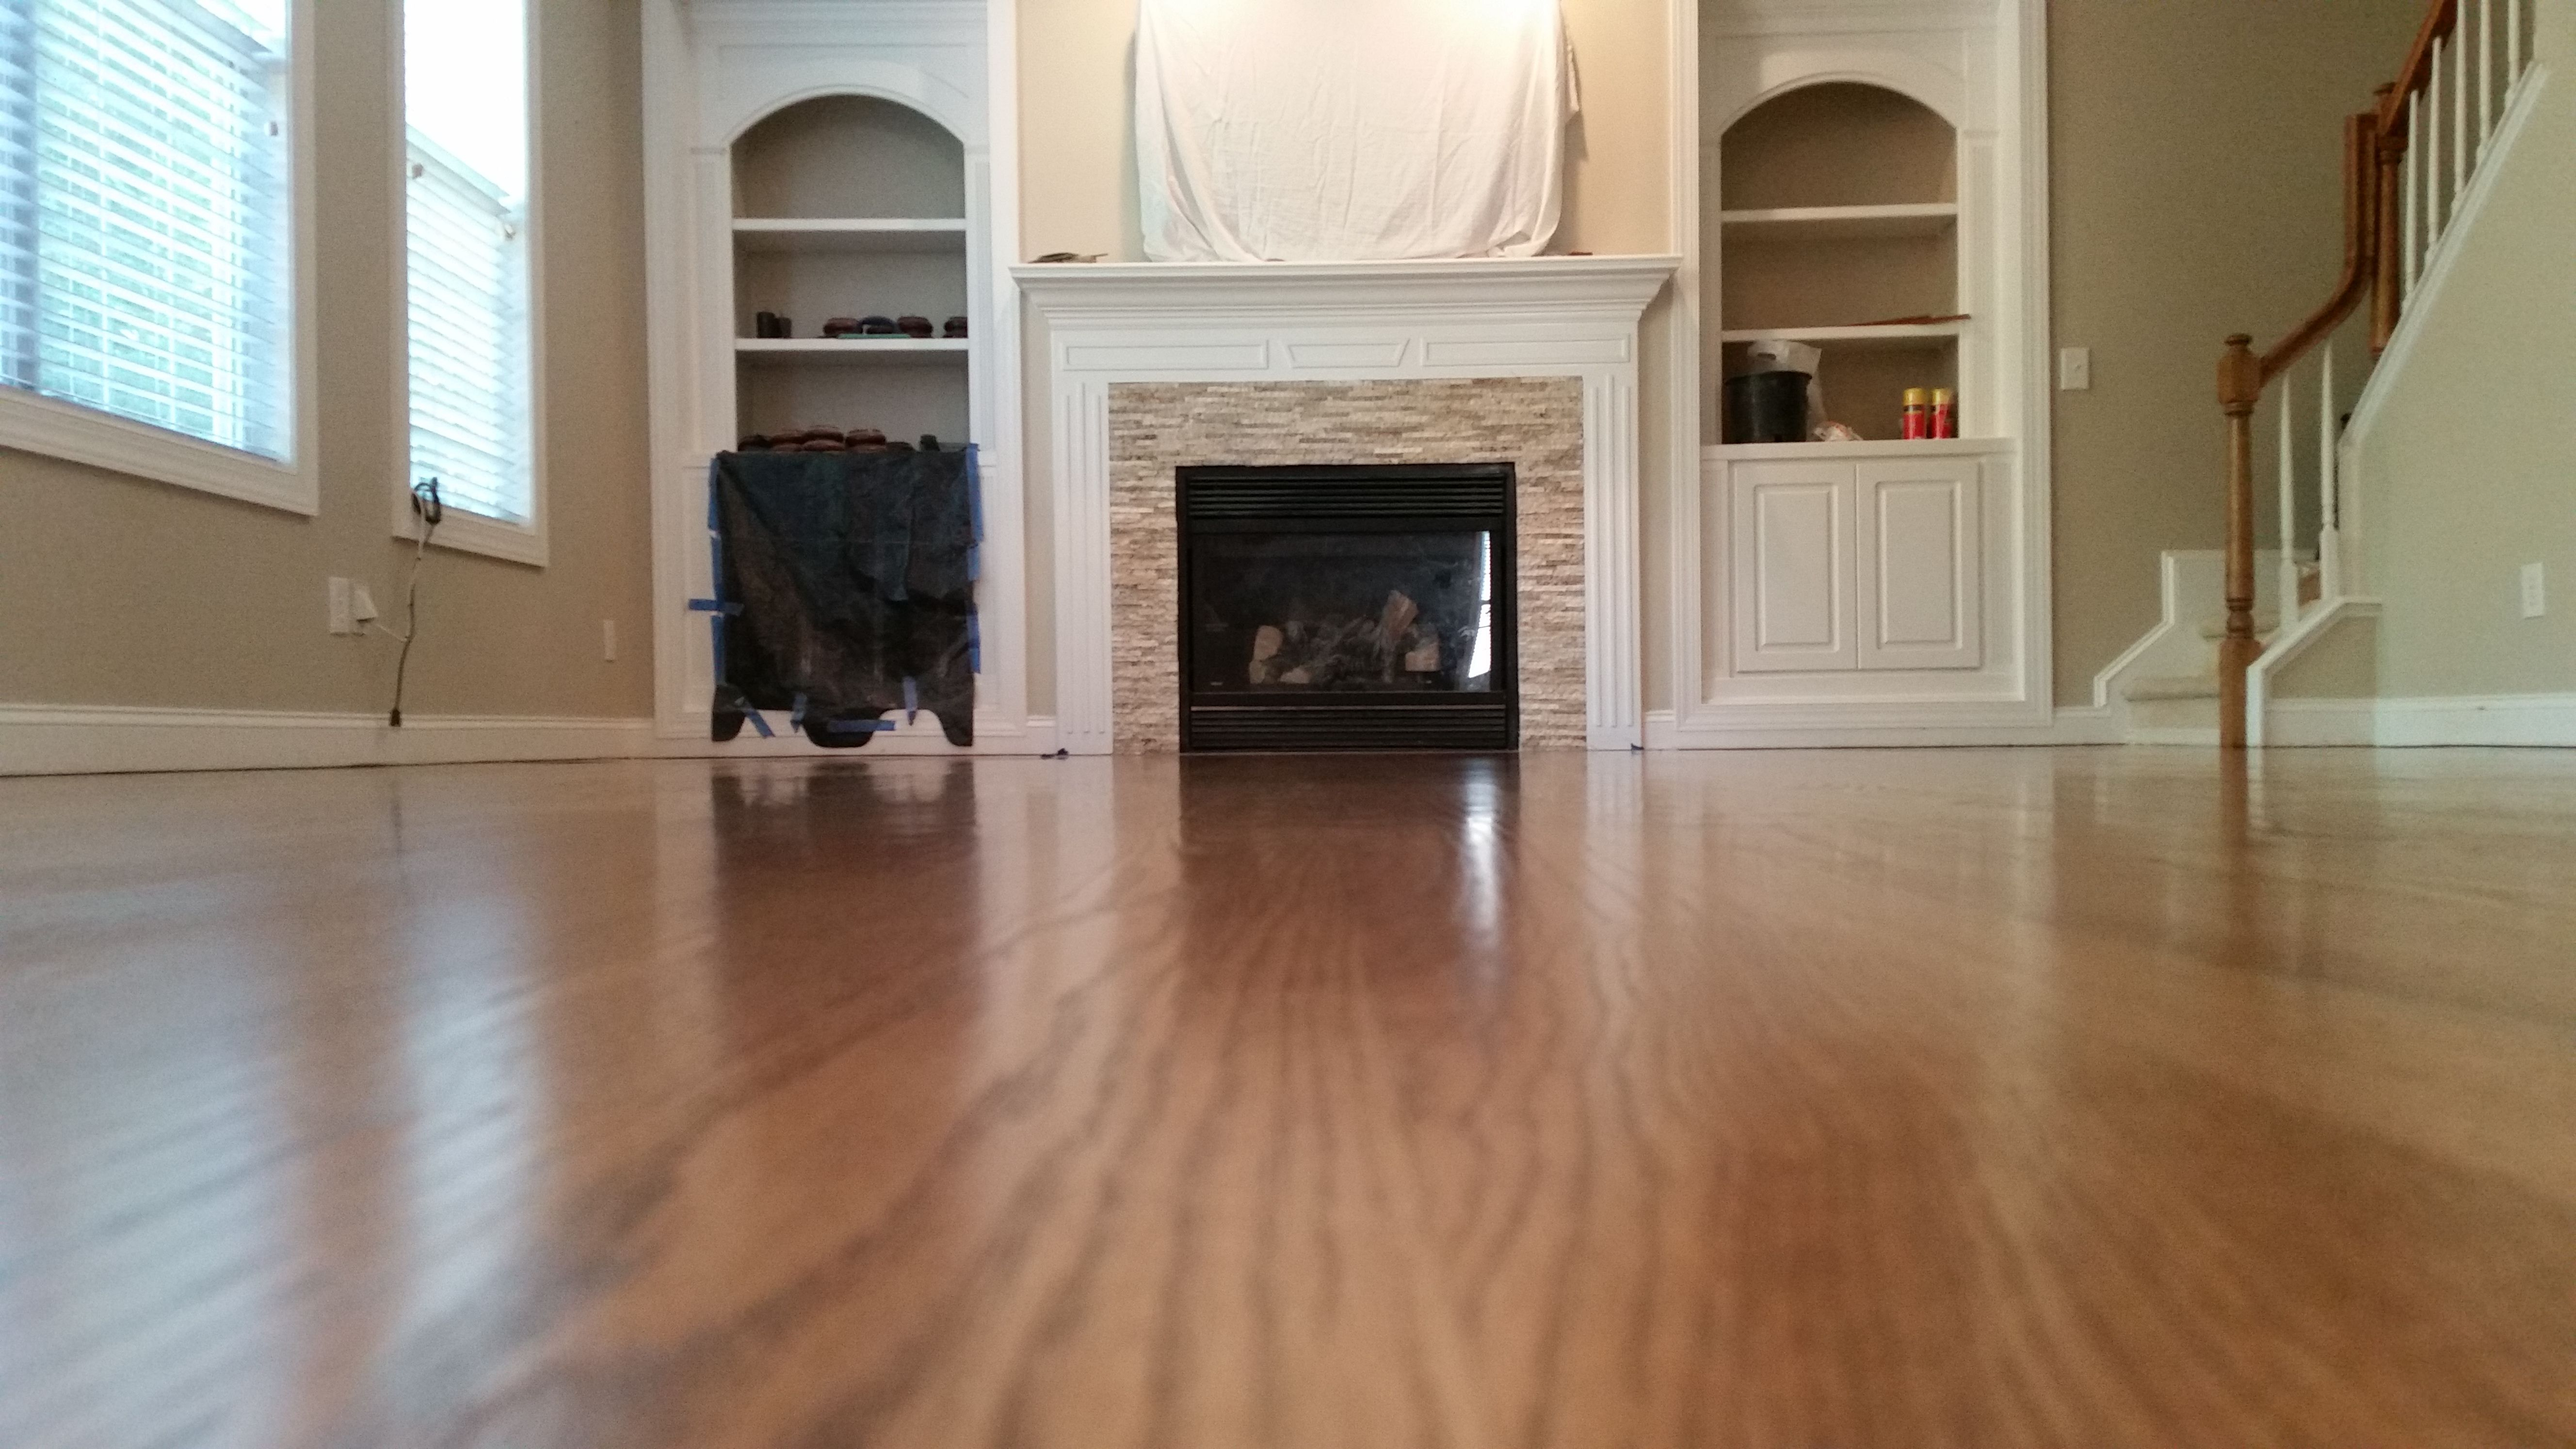 Flooring eclectic hardwood flooring boston by paris ceramics - Bona 50 Provincial And 50 Golden Oak Stain On Red Oak Hardwood Floors